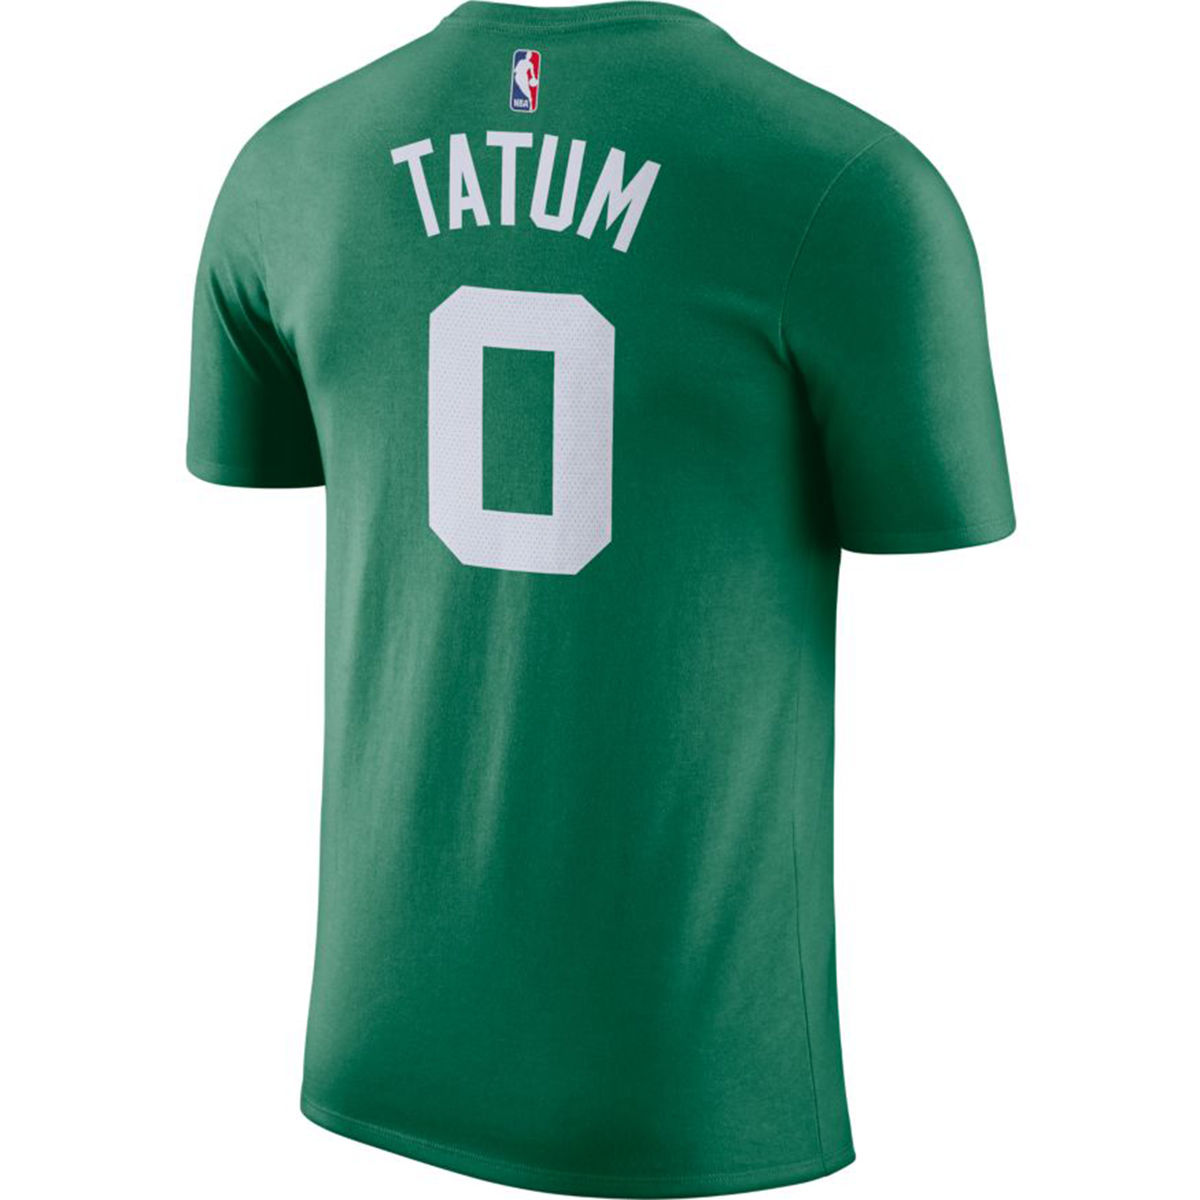 Boston Celtics Adult Jayson Tatum Name & Number T-Shirt